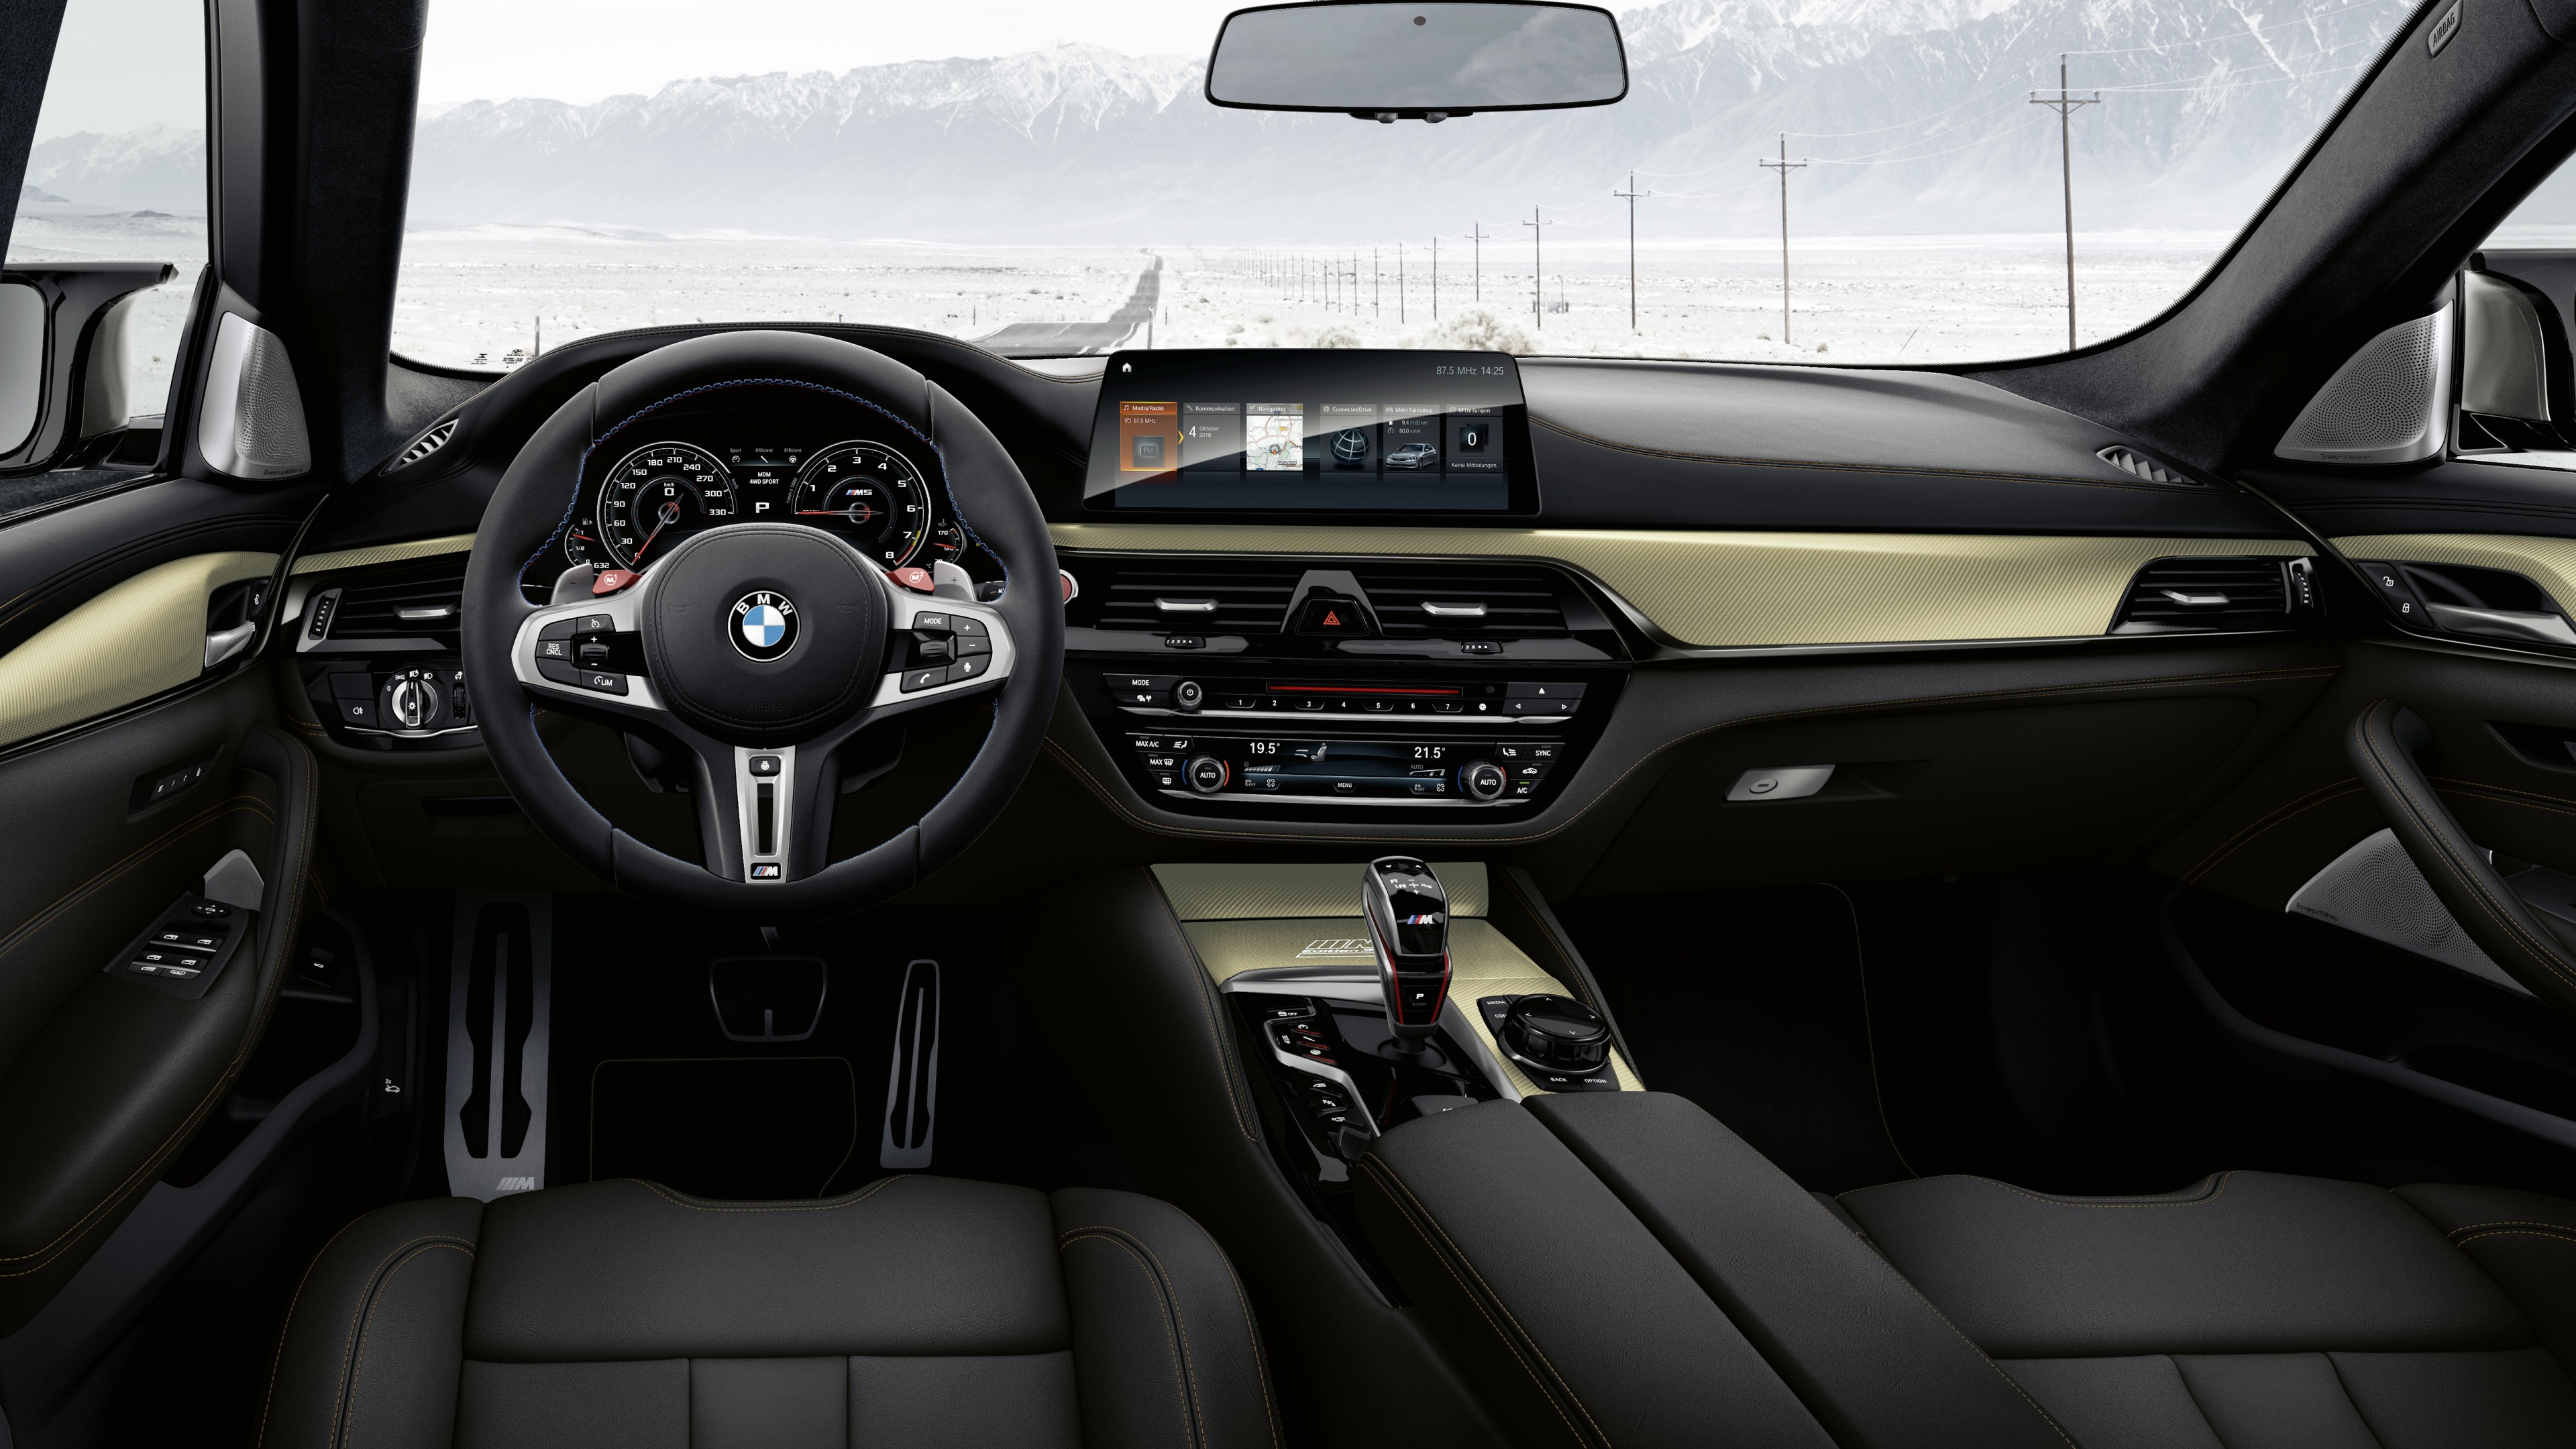 Bmw M5 Competition Edition 35 Jahre 2019 Interior Wallpaper Hd Car Wallpapers Id 12614